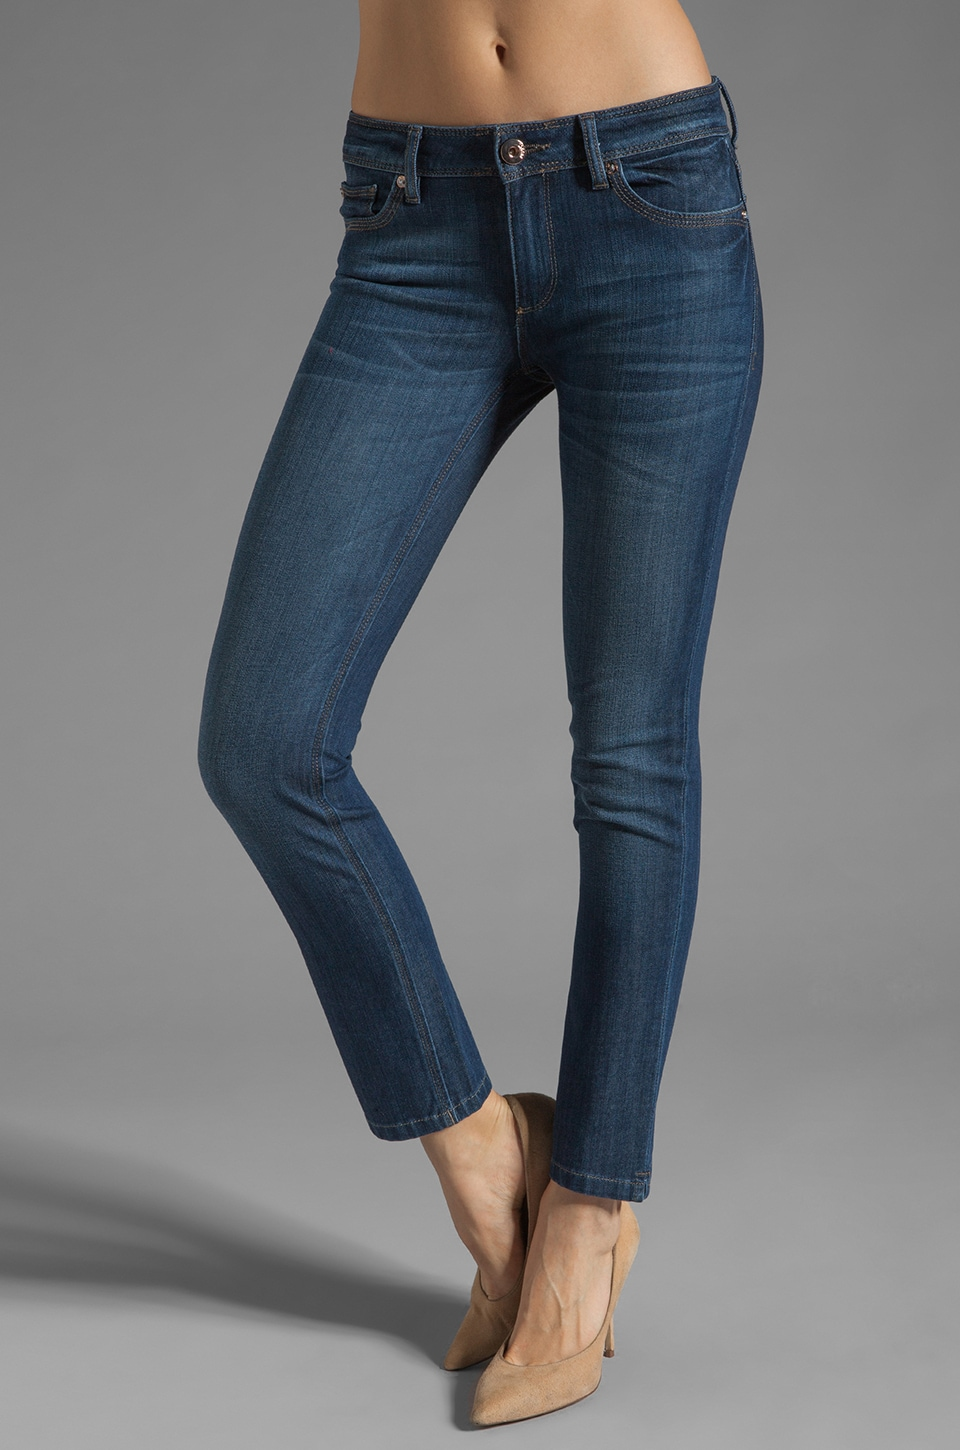 DL1961 Angel Ankle Skinny in Ashbury